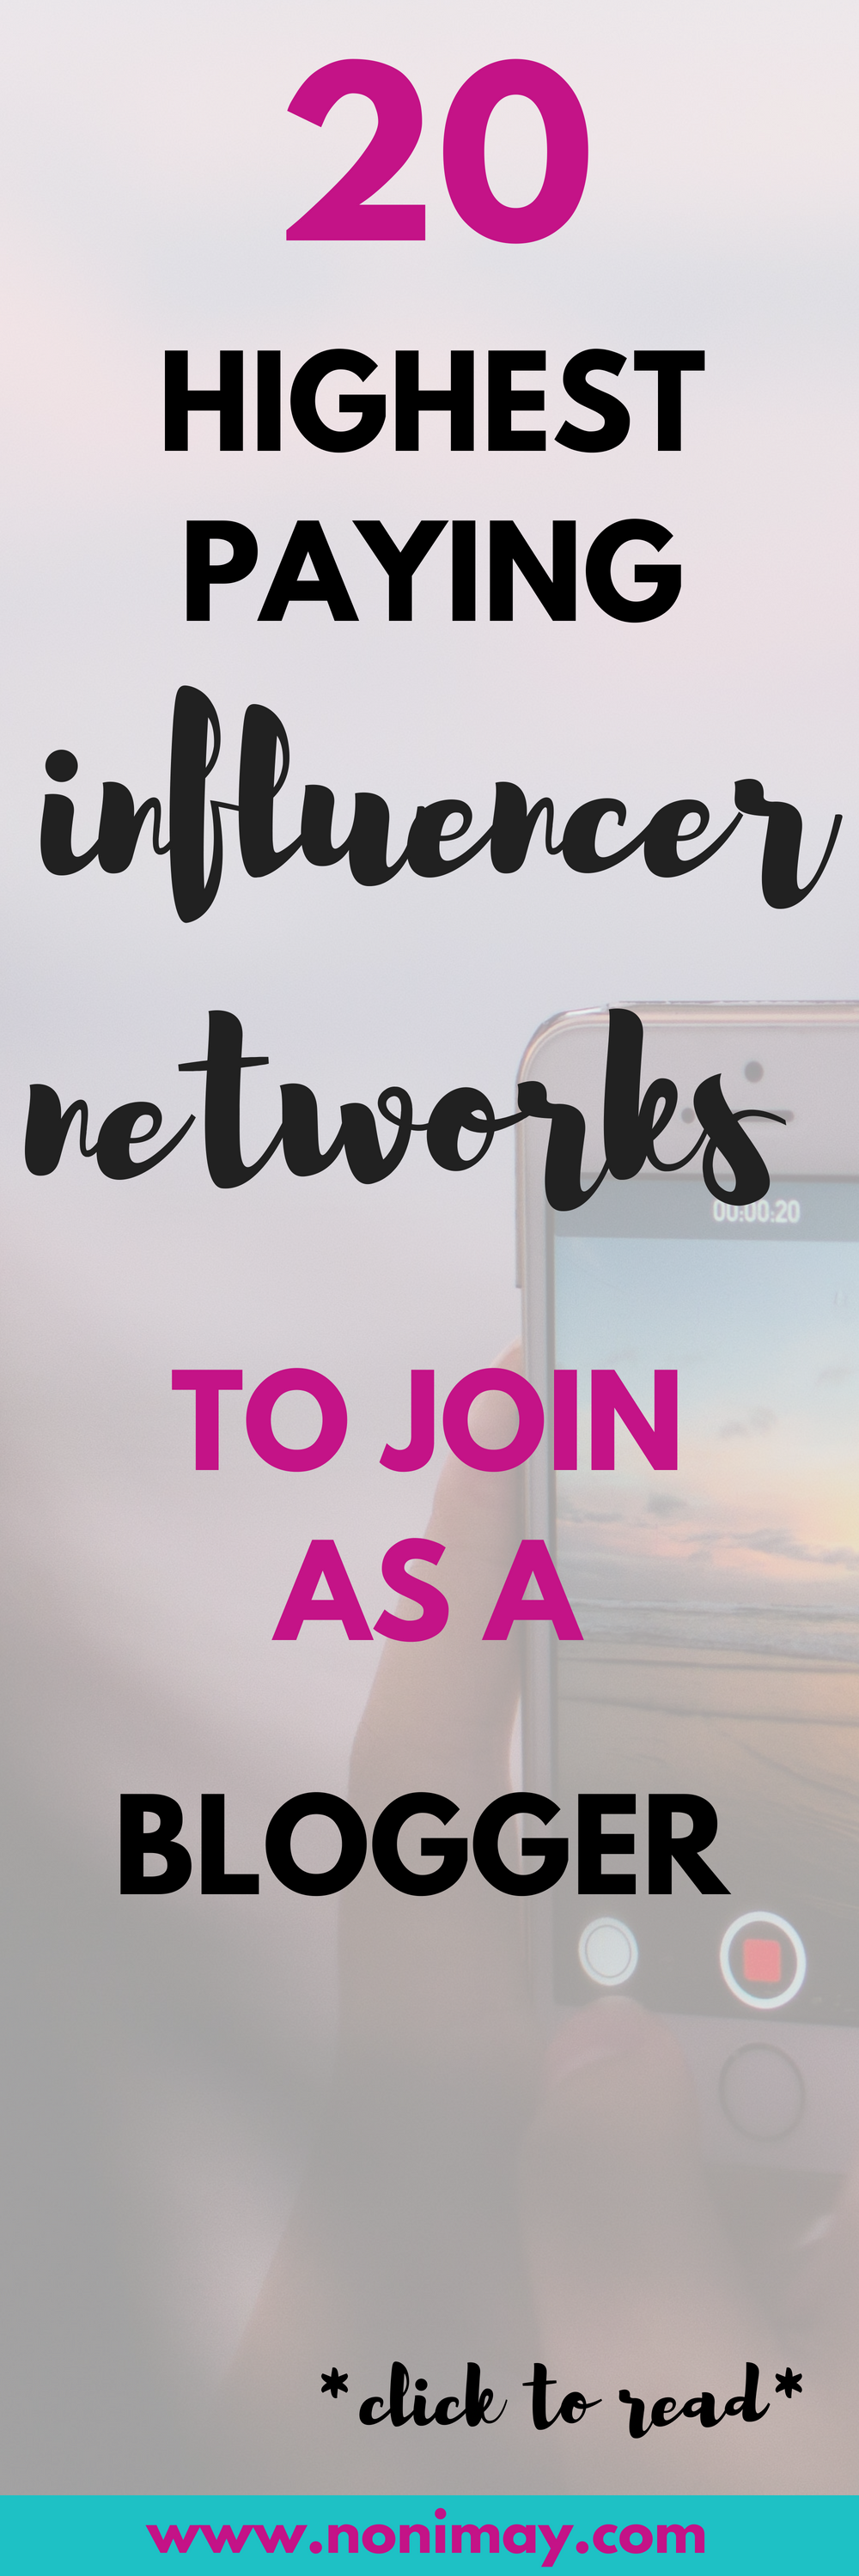 20 highest paying influencer agencies to join as a blogger